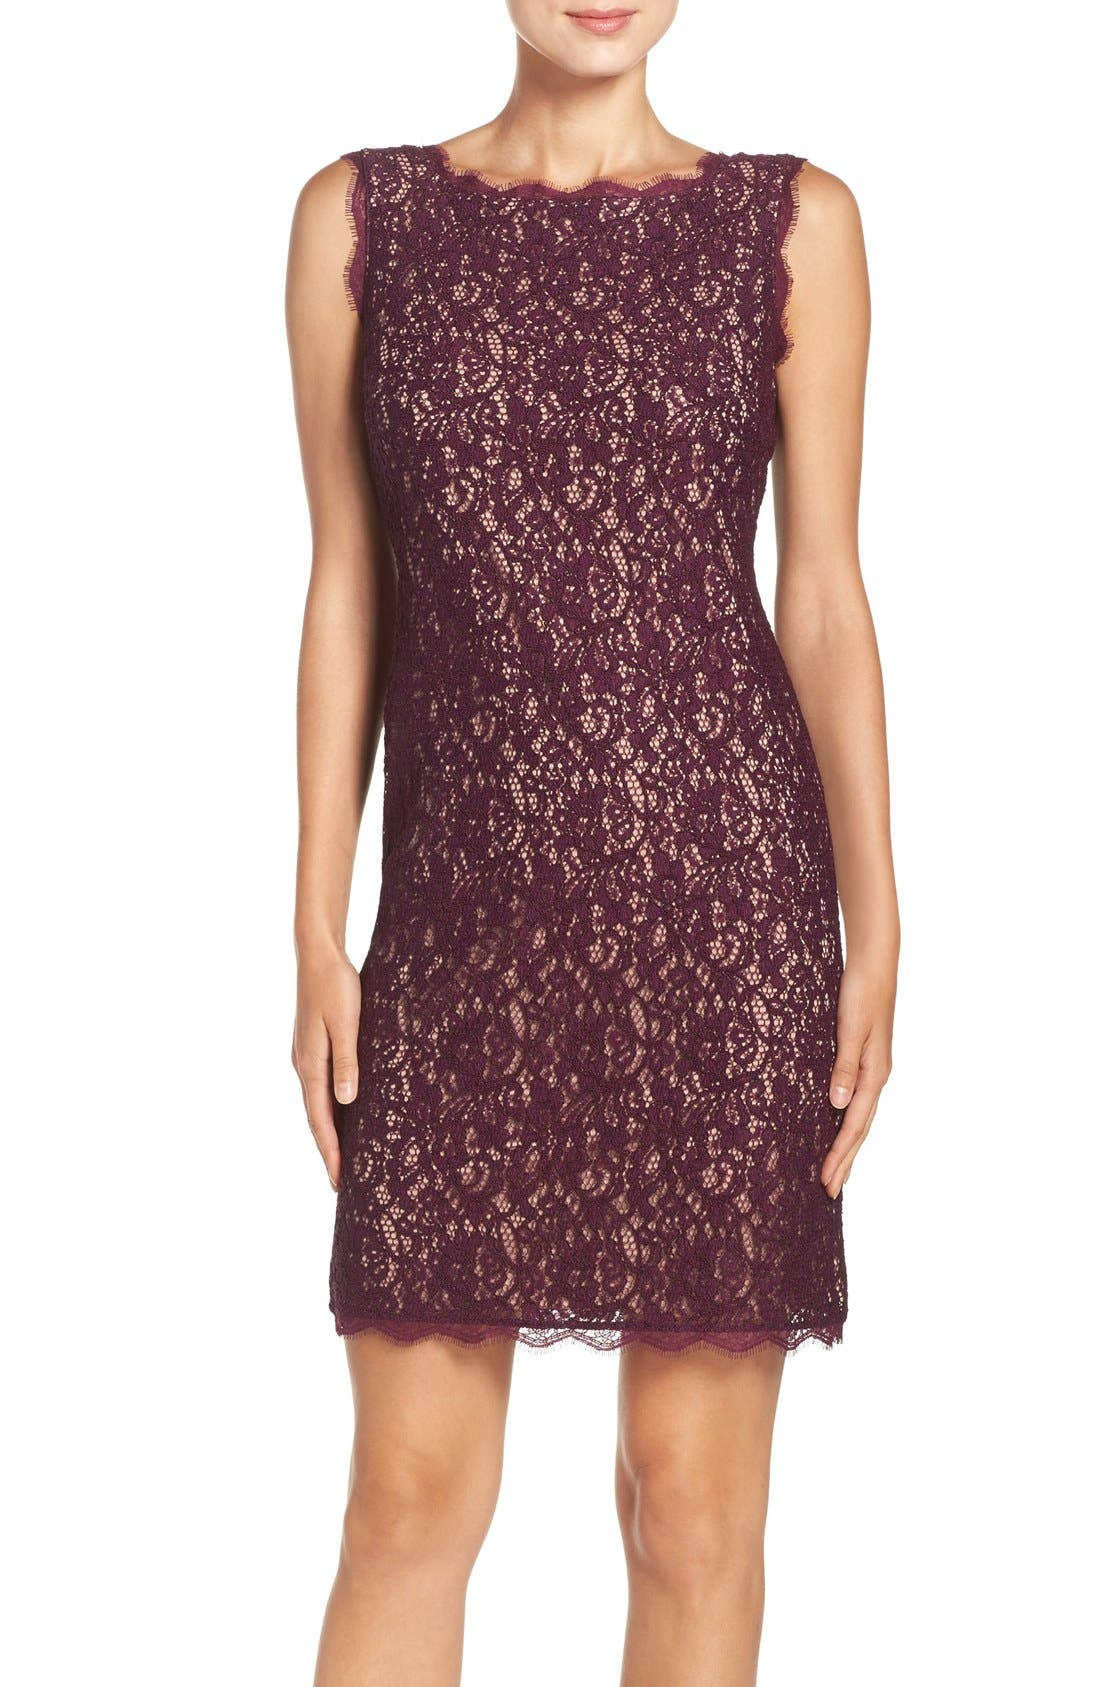 Boatneck Lace Sheath Dress,                         Main,                         color, Mulberry Nude